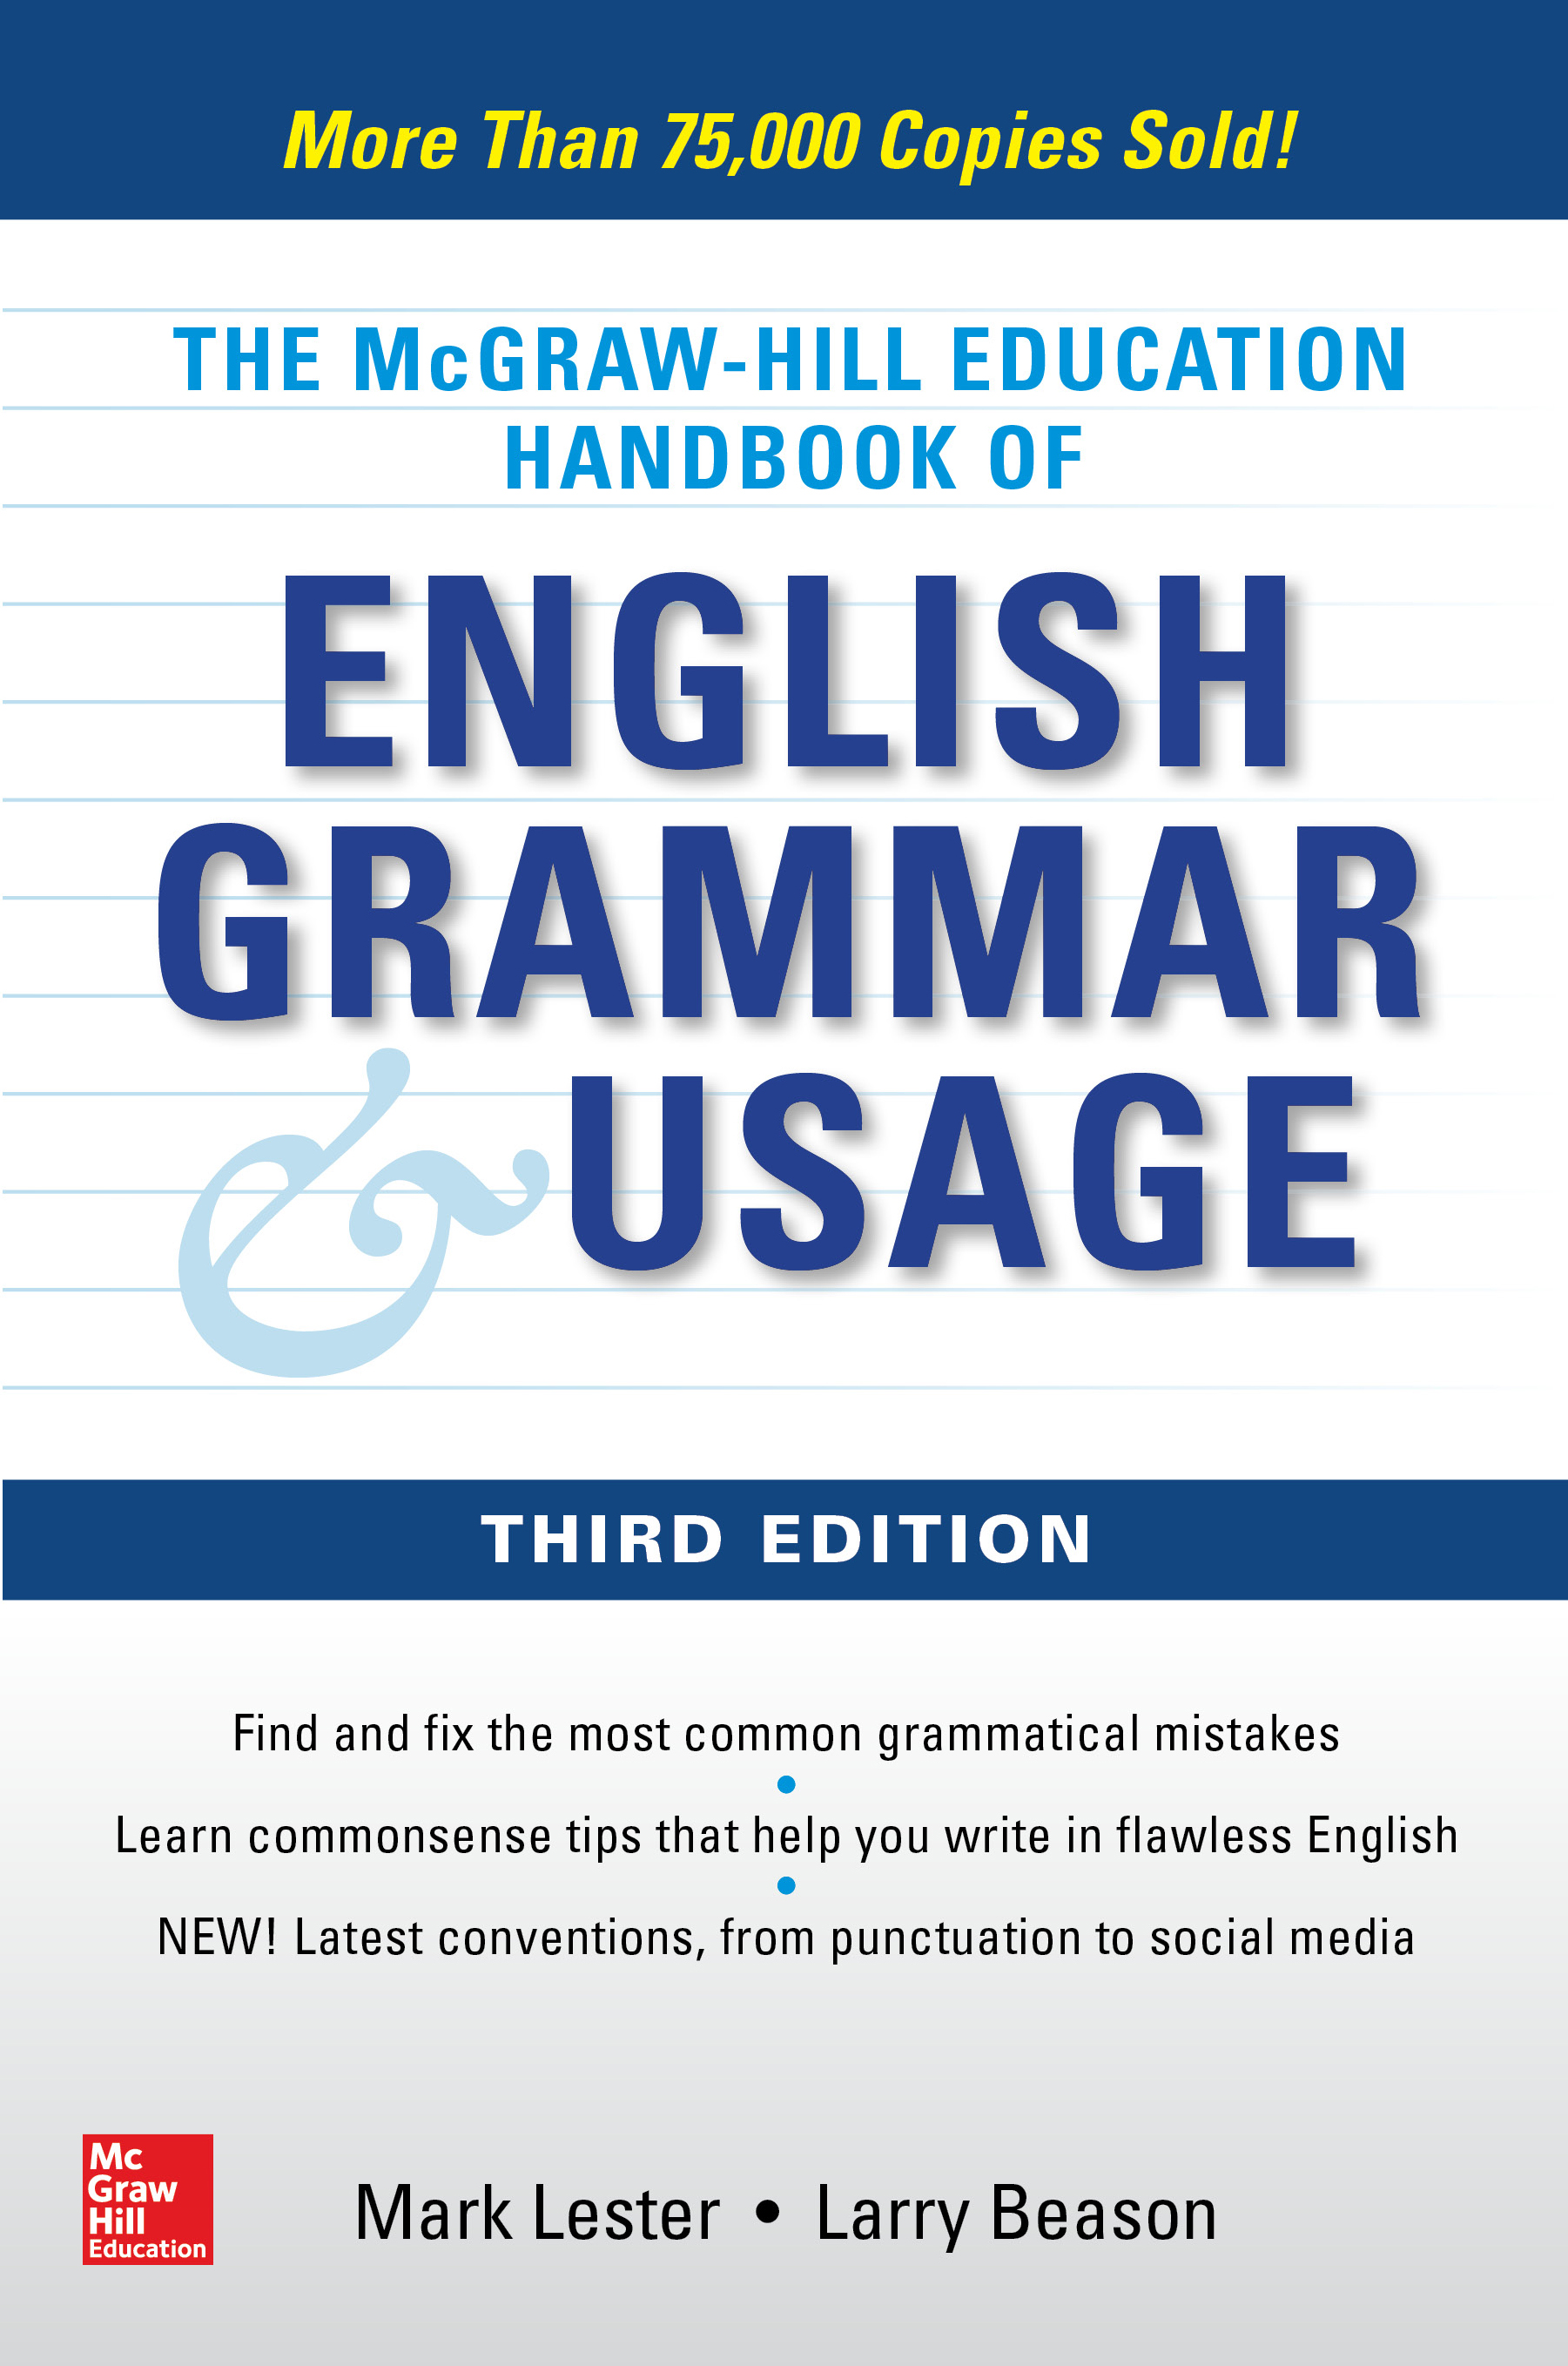 Download Ebook McGraw-Hill Education Handbook of English Grammar & Usage (3rd ed.) by Mark Lester Pdf